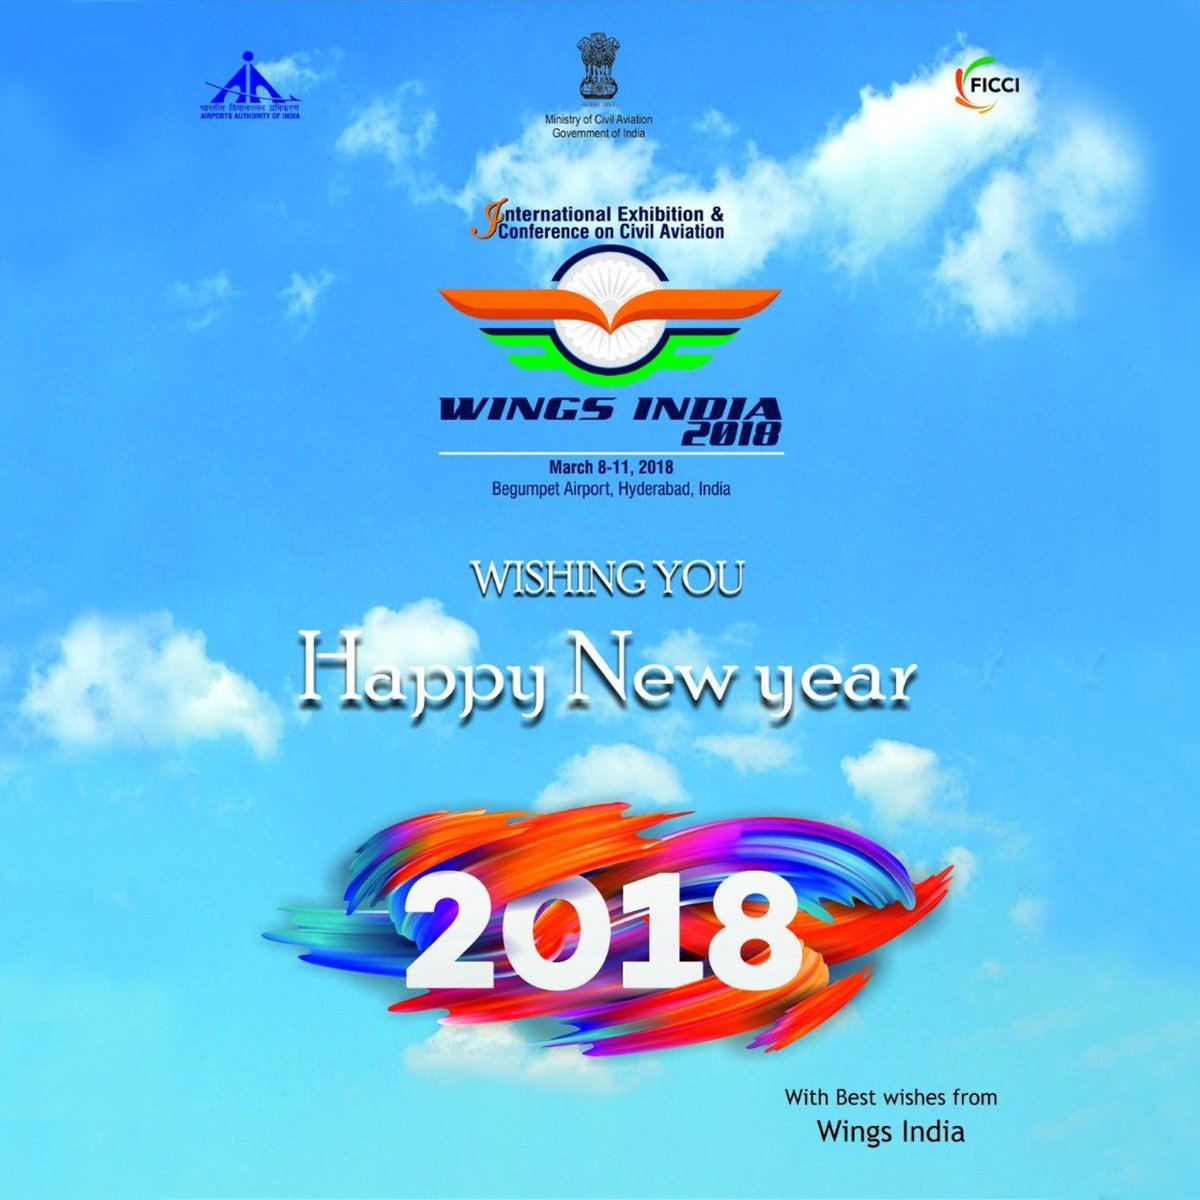 wings india 2018 on twitter wings india 2018 wishes all a very happy new year as indian aviation looks to fly higher into brighter skies